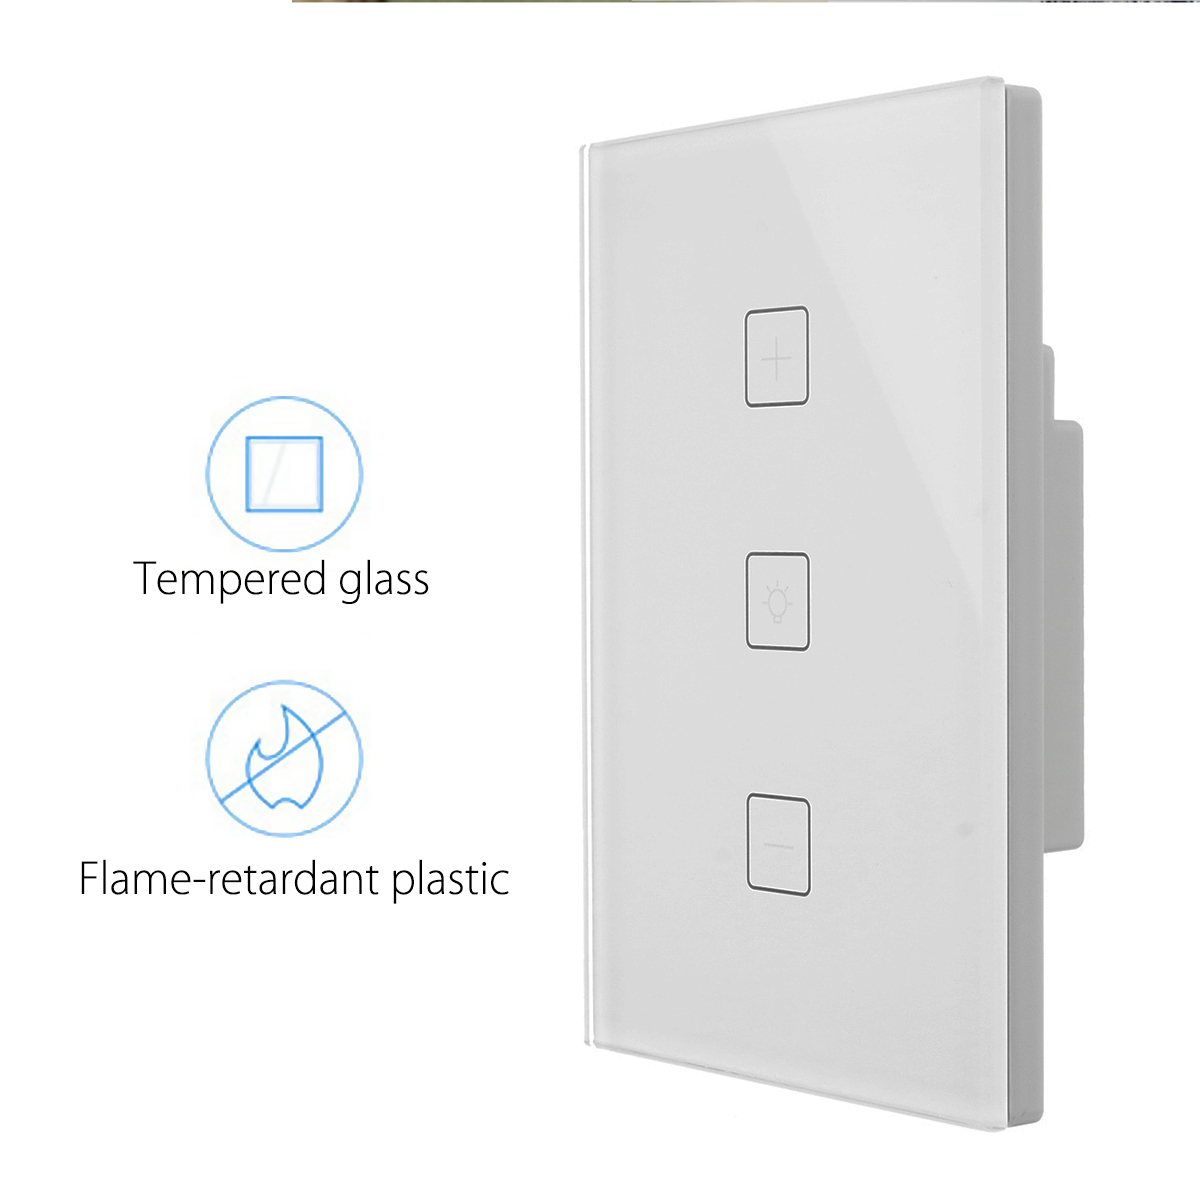 100-240V 10A Wireless Smart Lighting Dimmer Switch Wall Socket Switch Panel